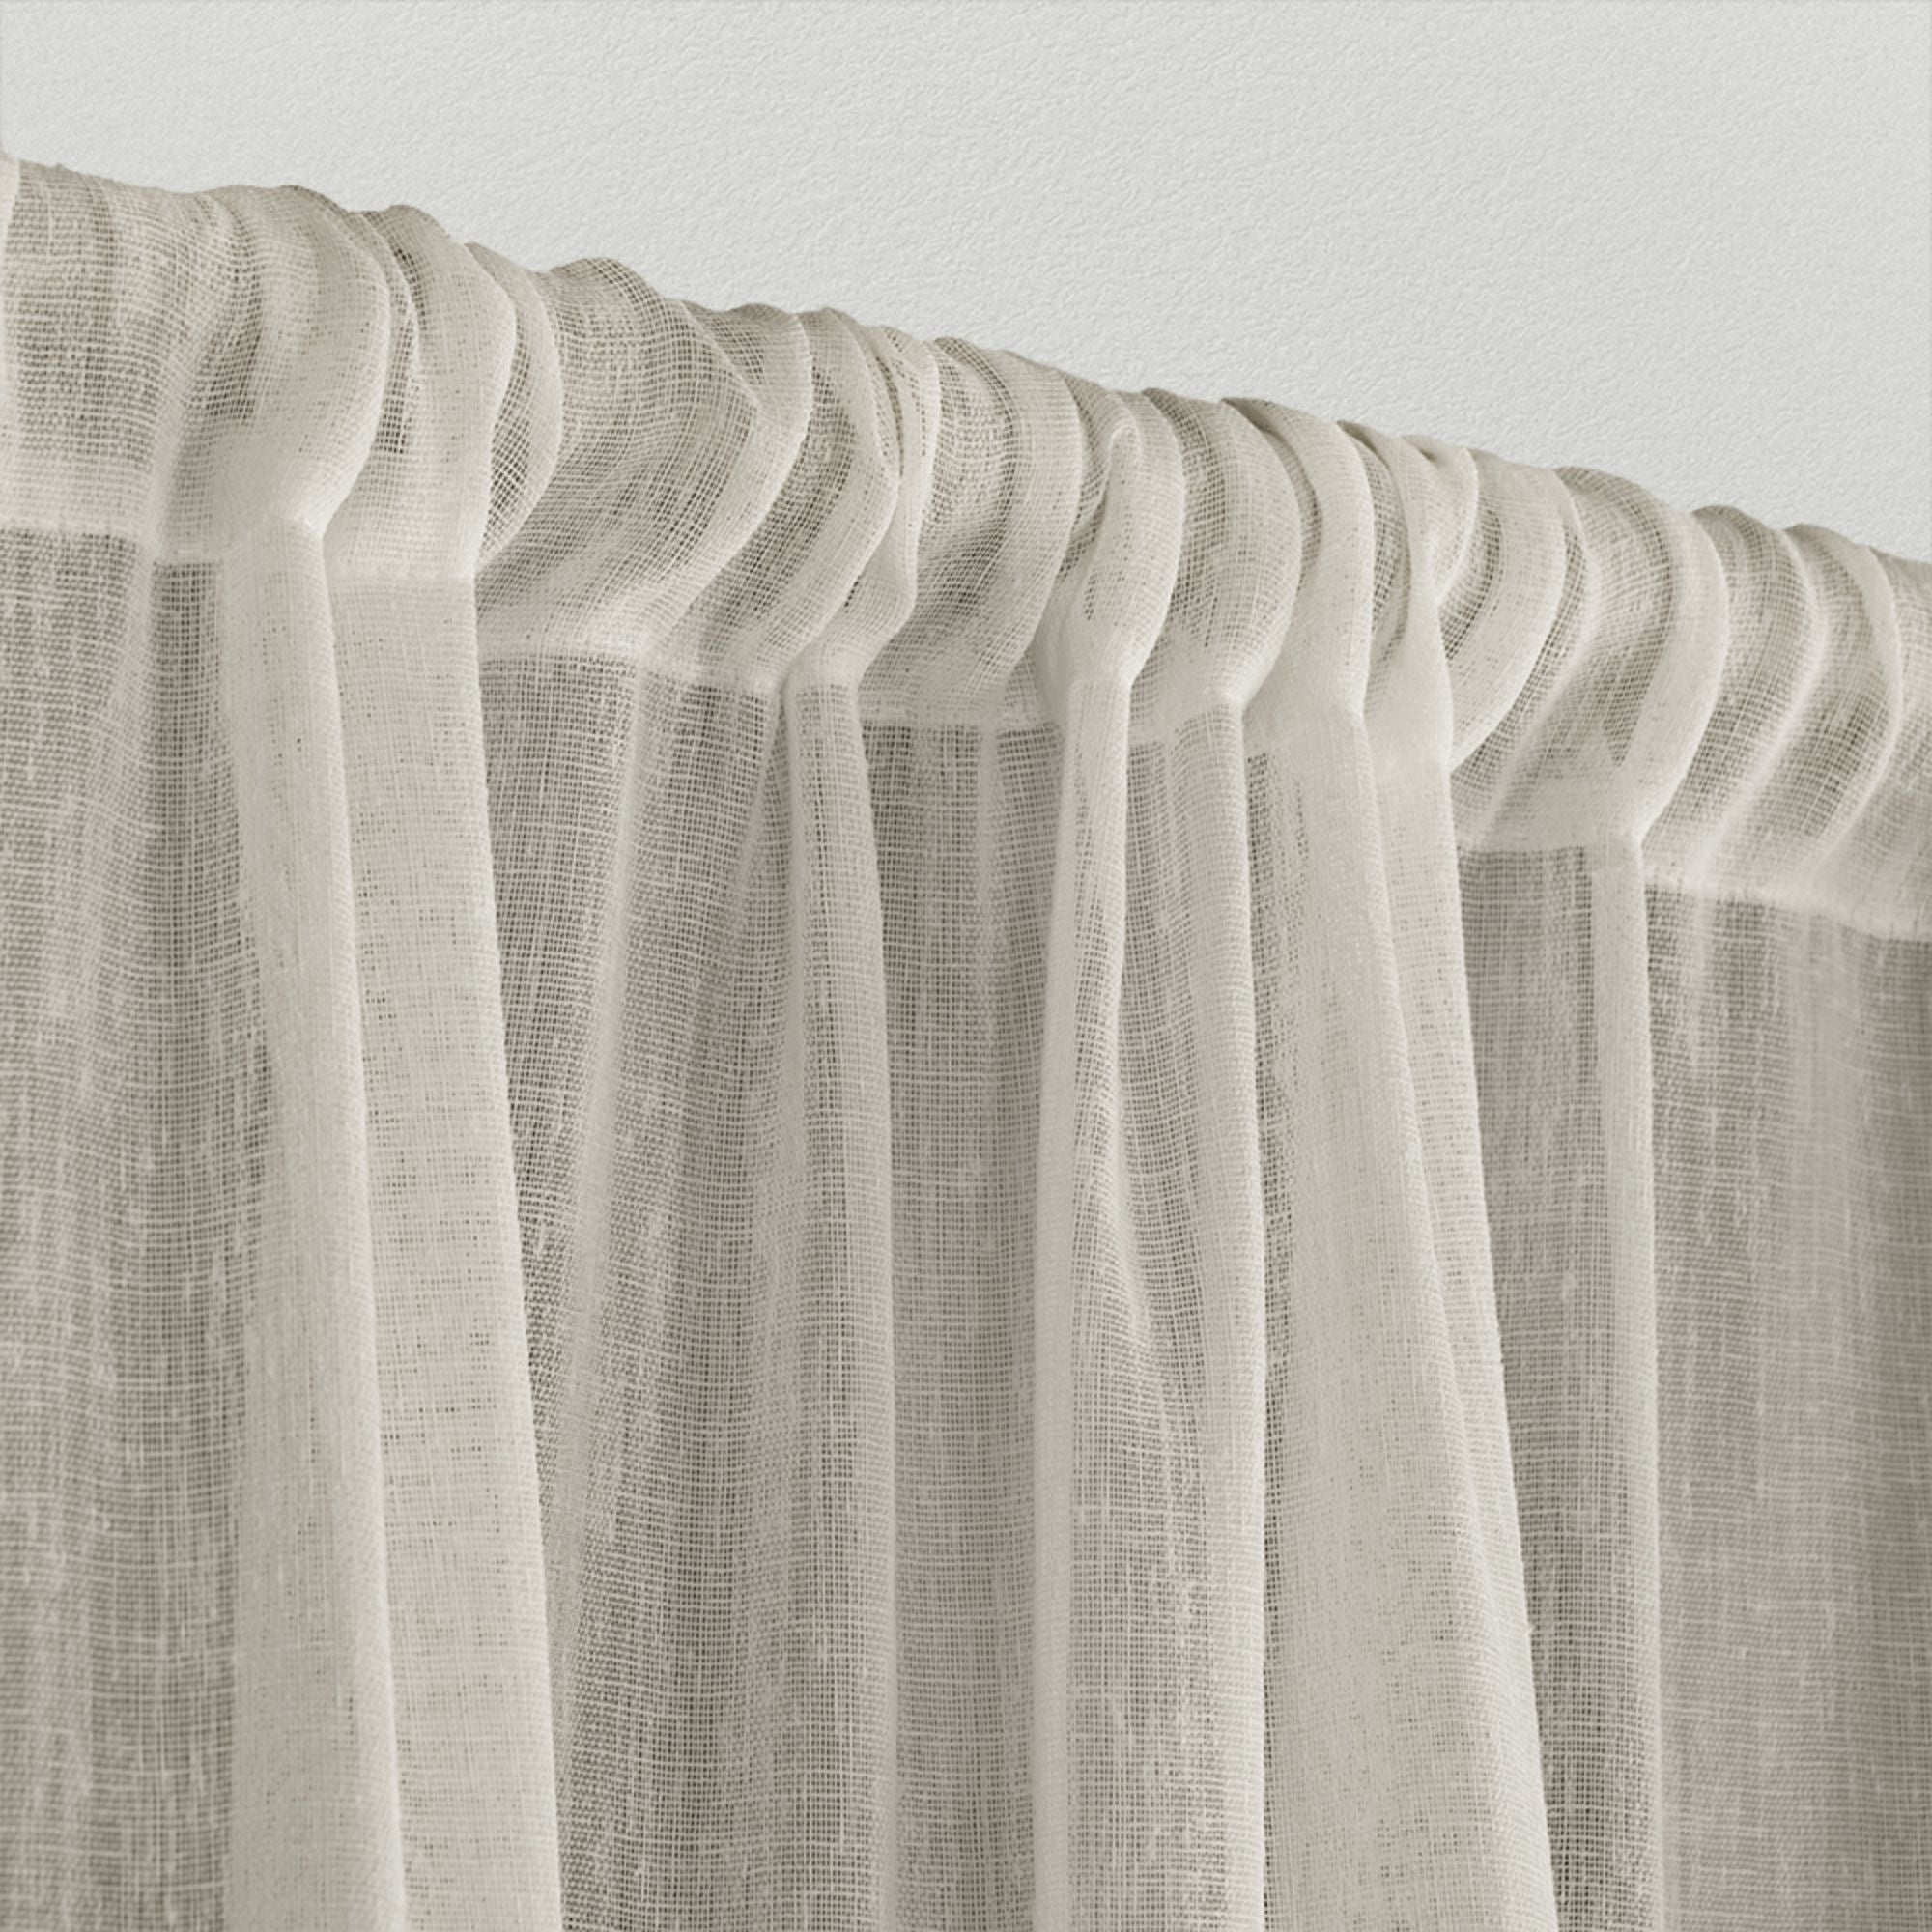 Belgian Sheer Window Curtain Panel Pairs With Rod Pocket Inside Well Liked Ati Home Belgian Sheer Window Curtain Panel Pair With Rod Pocket (View 2 of 20)